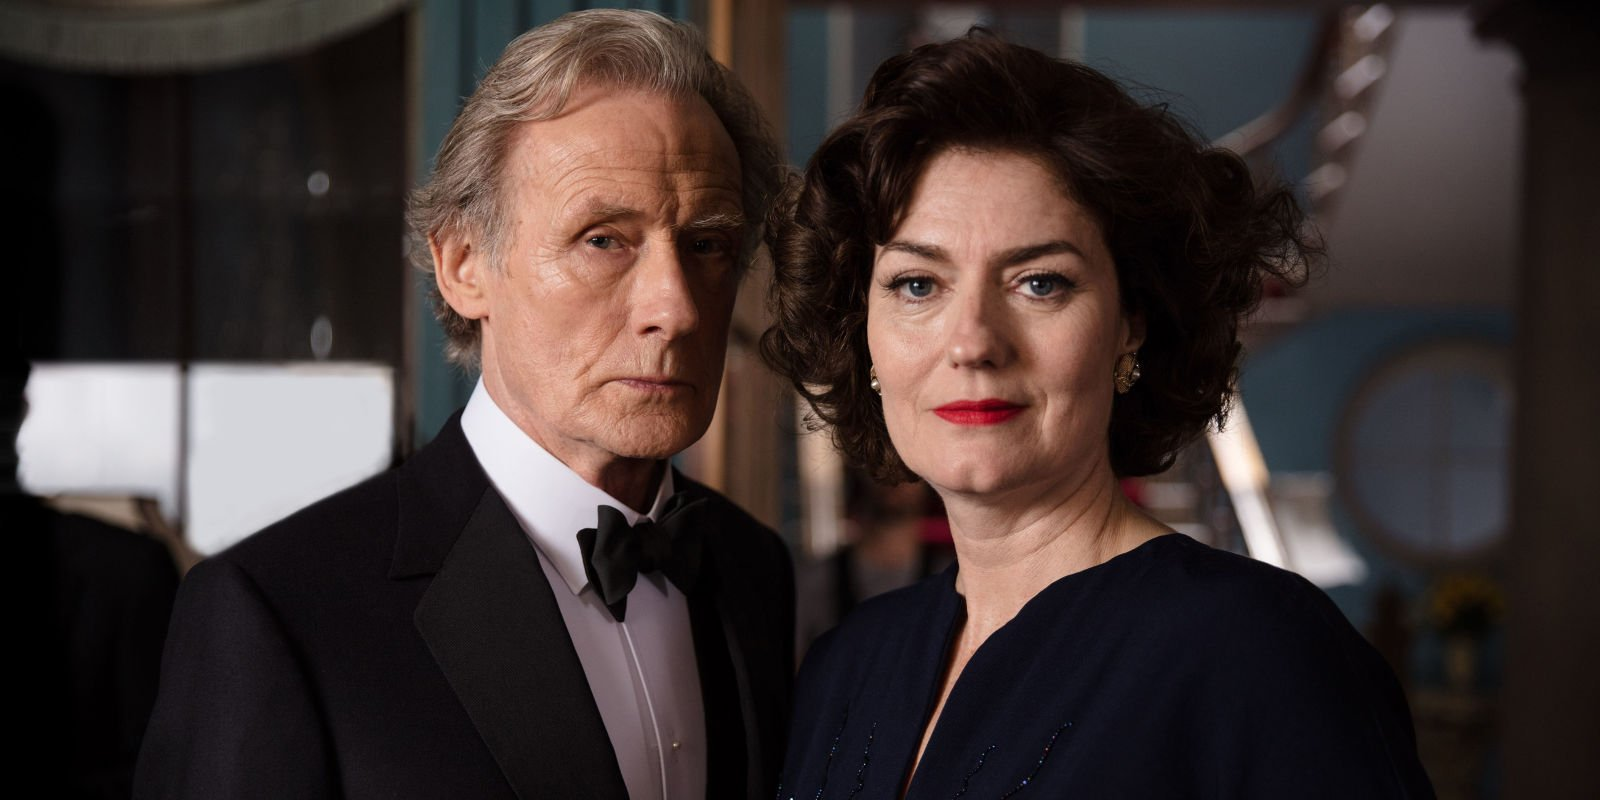 """Ordeal by Innocence's Morven Christie says her """"resting bitch face"""" is meant to deceive viewers in murder mystery"""